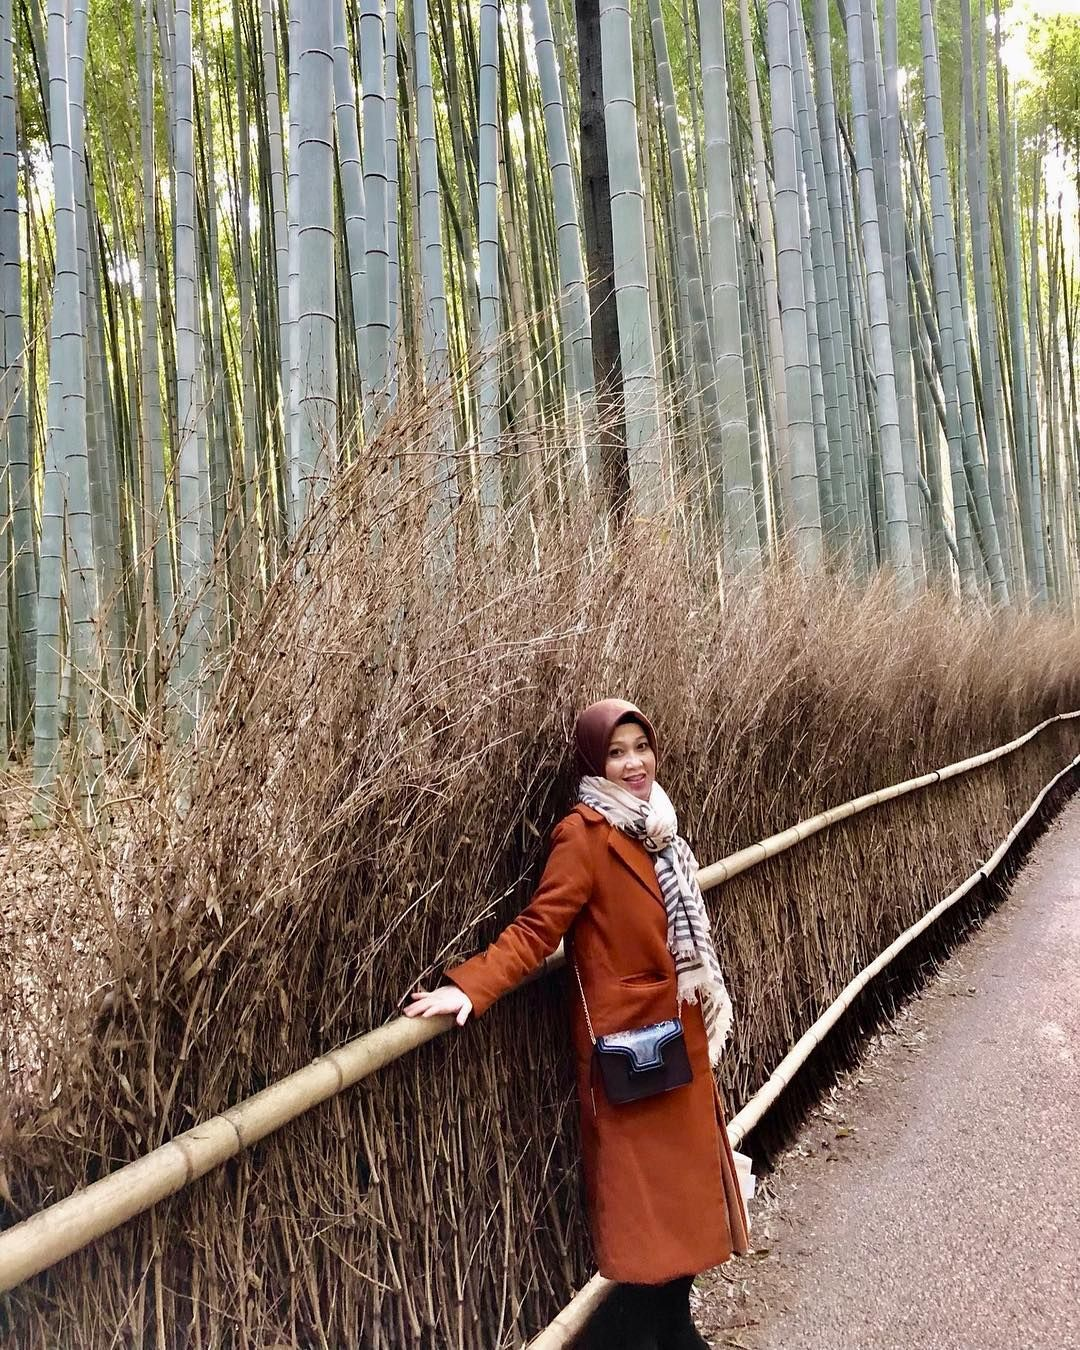 [New] The 10 Best Home Decor (with Pictures) -  Japan  . . . . . #visitjapan #arashiyama #arashiyamabambooforest #kyoto #holiday #instatravel # #hijabtraveler #ootdhijab #enjoylife #havefun #instalove #japantrip #muslimtraveller #igdaily #lfl #instalike #enjoytrip #indonesiantraveller #hootd #picoftheday #like #instagram #picoftheday #happiness #traveladdict #travelling #travelgram #wonderful_places #osaka #japan